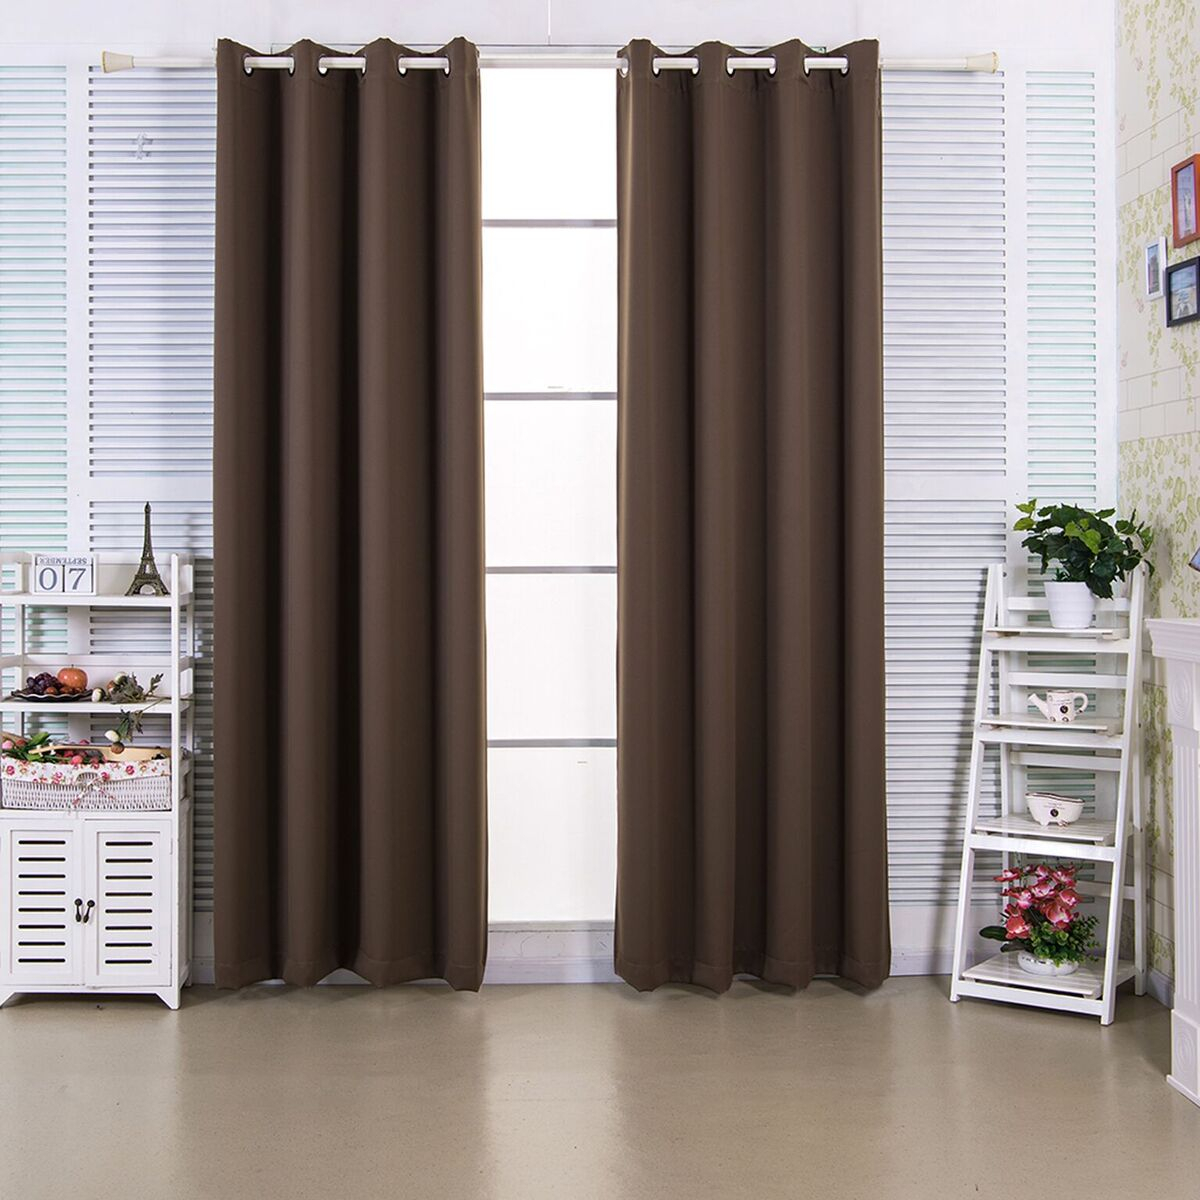 Elegant Home Fashions Edessa Premium Solid Window Panels In Hazelnut Brown In 72 Inch – Intended For Solid Thermal Insulated Blackout Curtain Panel Pairs (View 23 of 30)